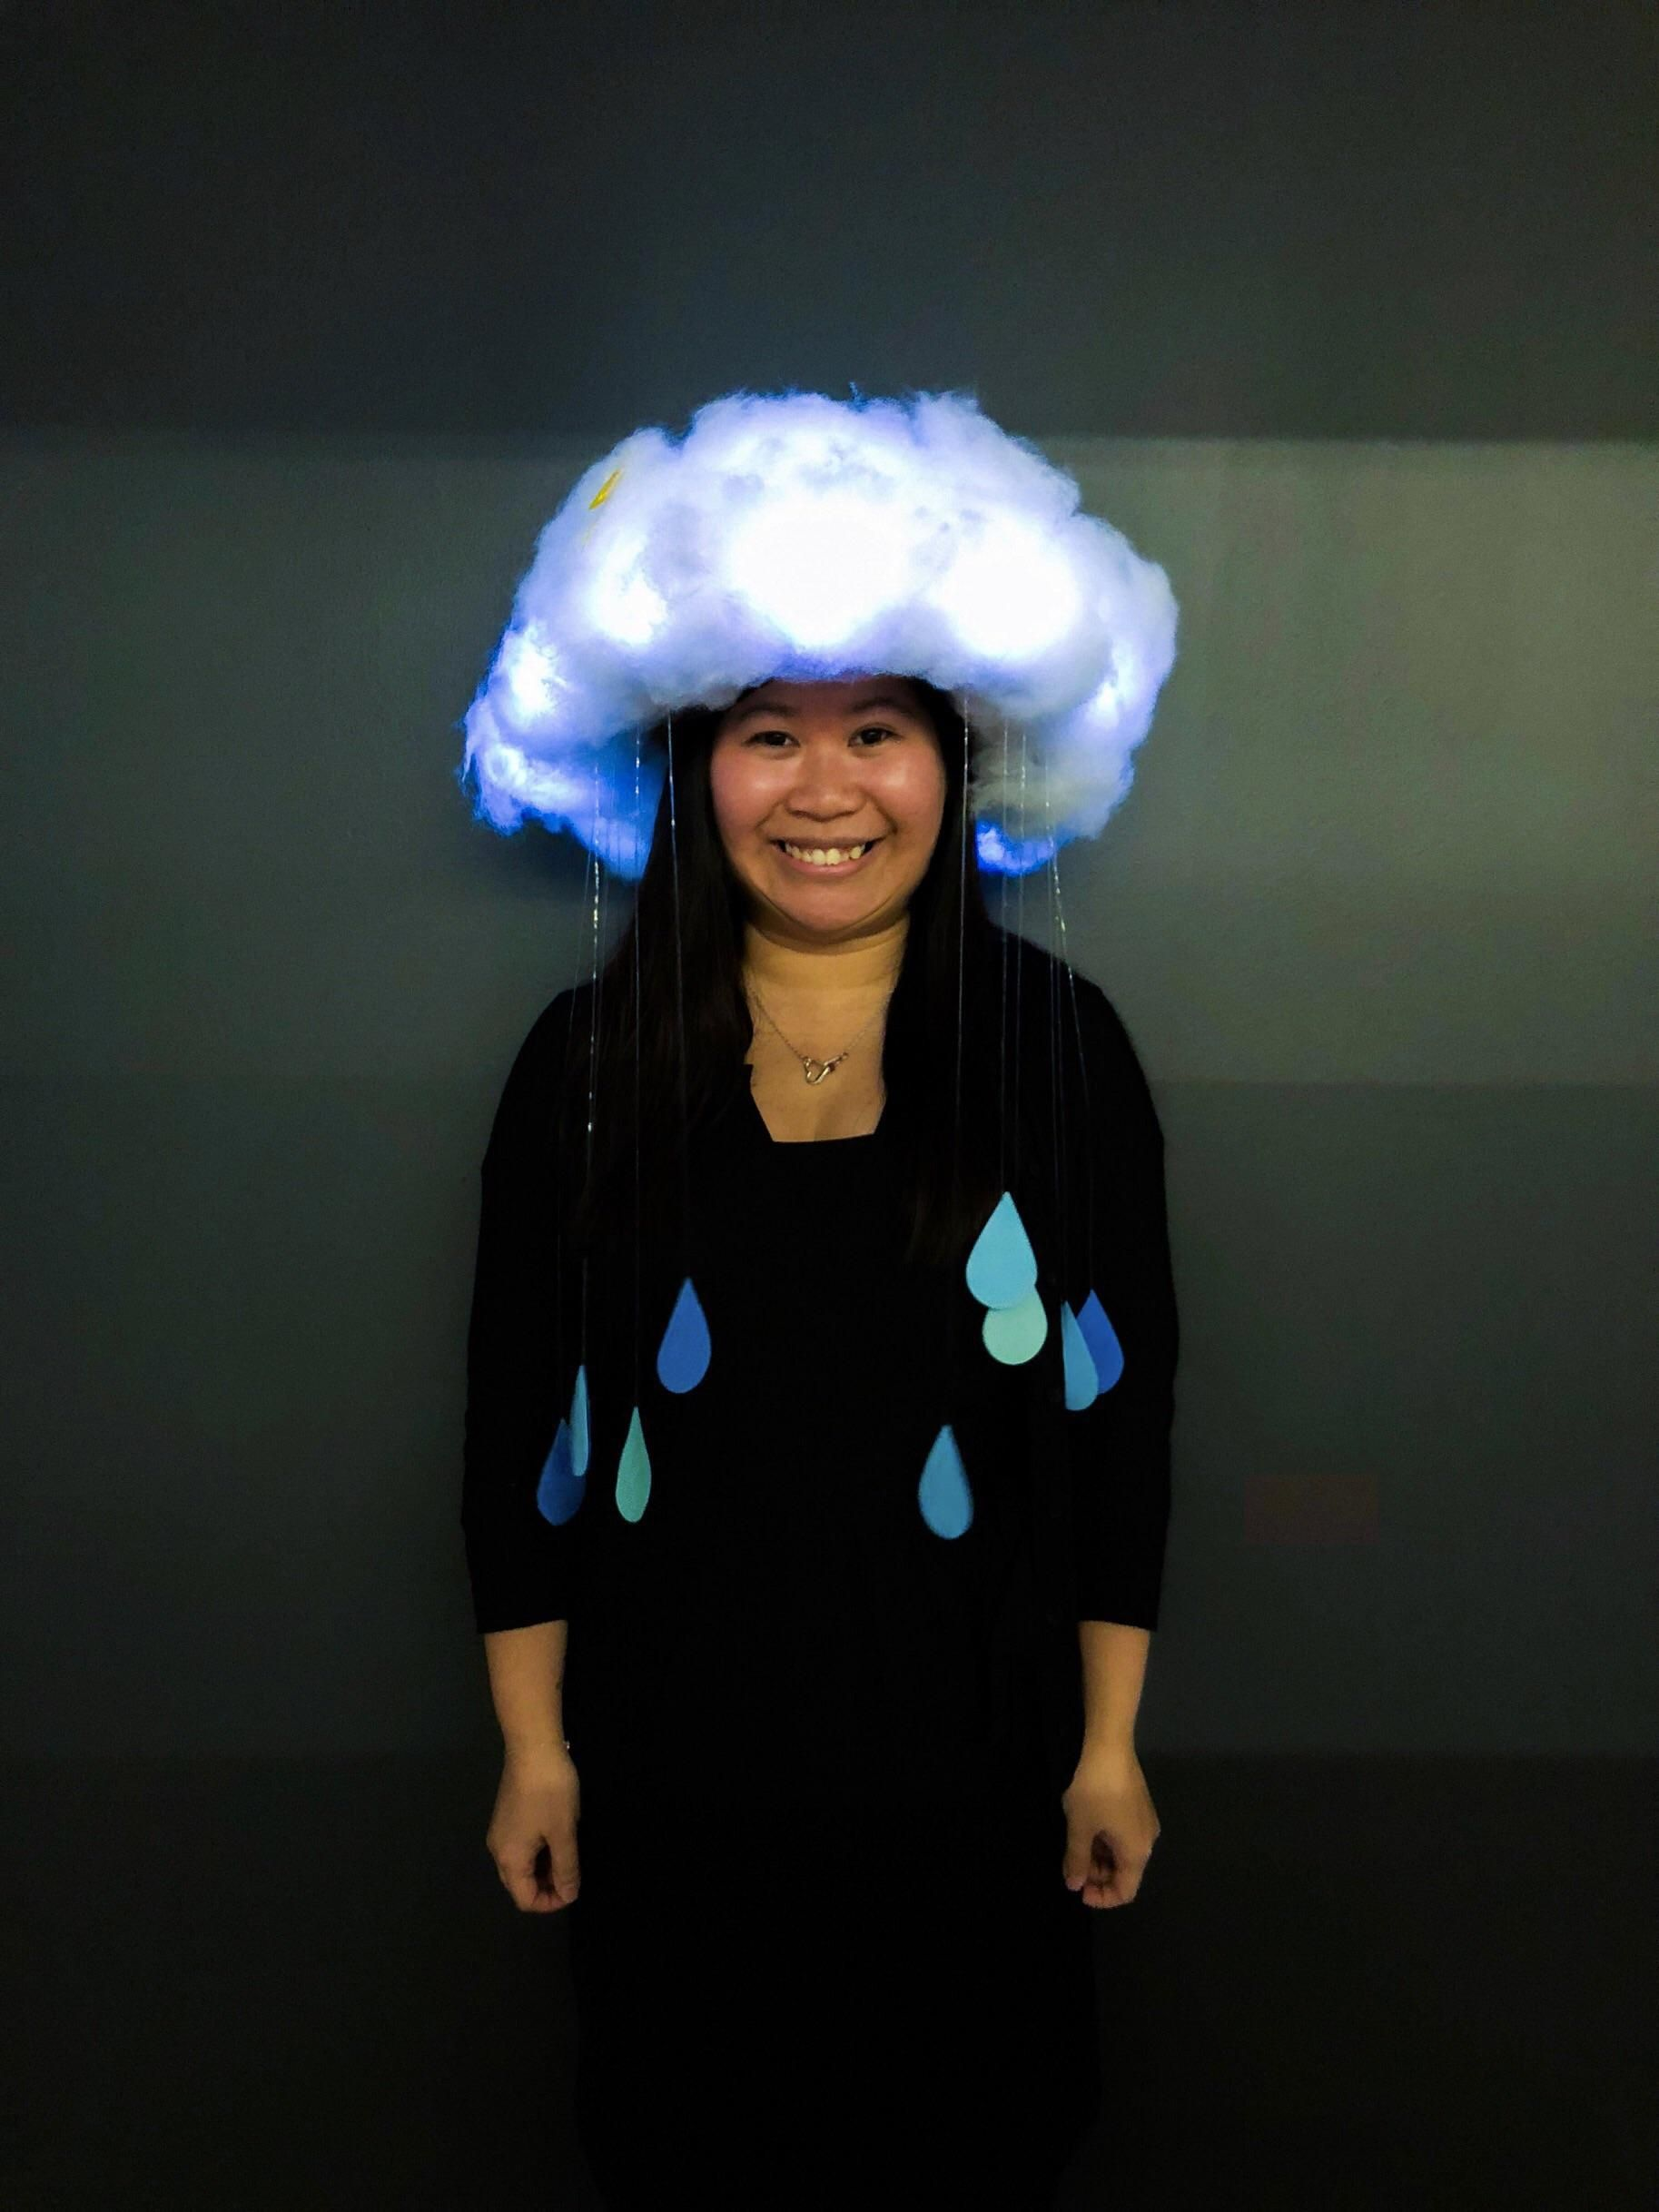 It's my first time making a Halloween costume: I'm a Rain Cloud!